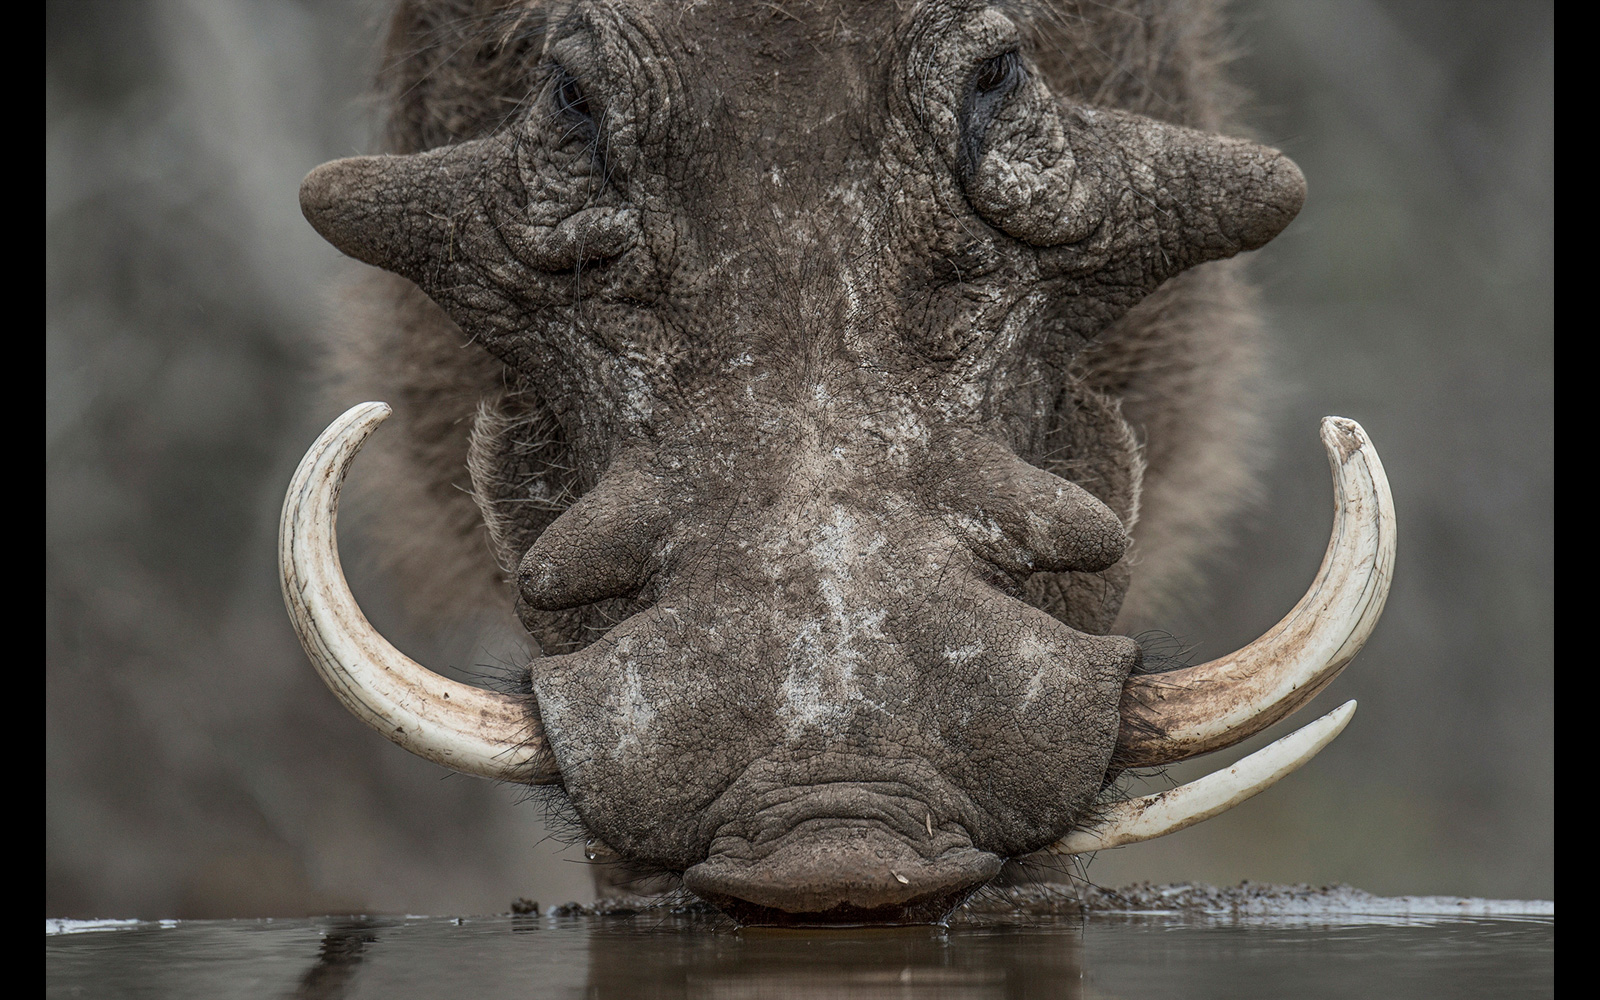 A wild, weathered warthog boar drinking at a bird hide in Zimanga Private Game Reserve, South Africa © Johan J. Botha